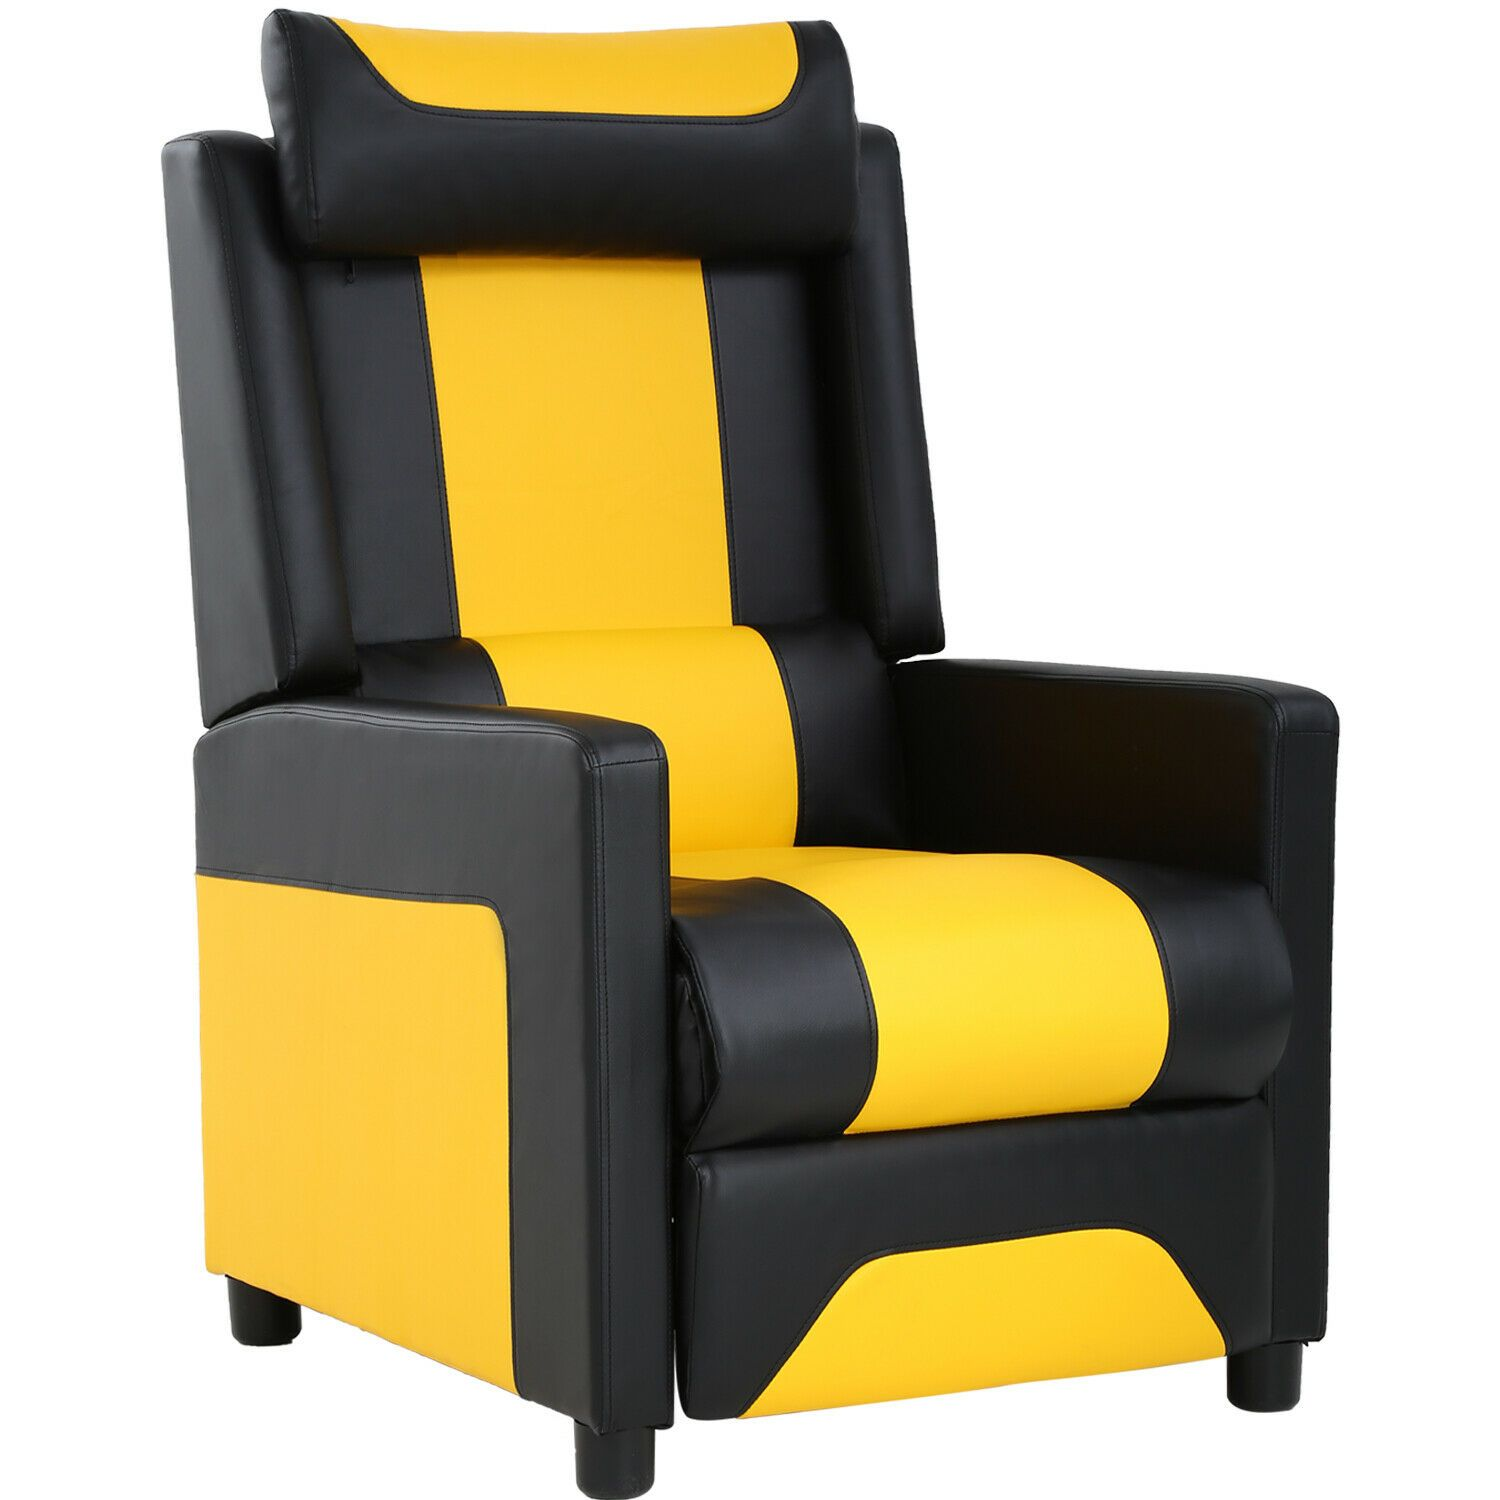 Pu Leather Recliner Chair Home Gaming Chair Easy Assemble Theater Reclining Sofa White Sofa Ideas Gaming Sofa Leather Living Room Furniture Reclining Sofa